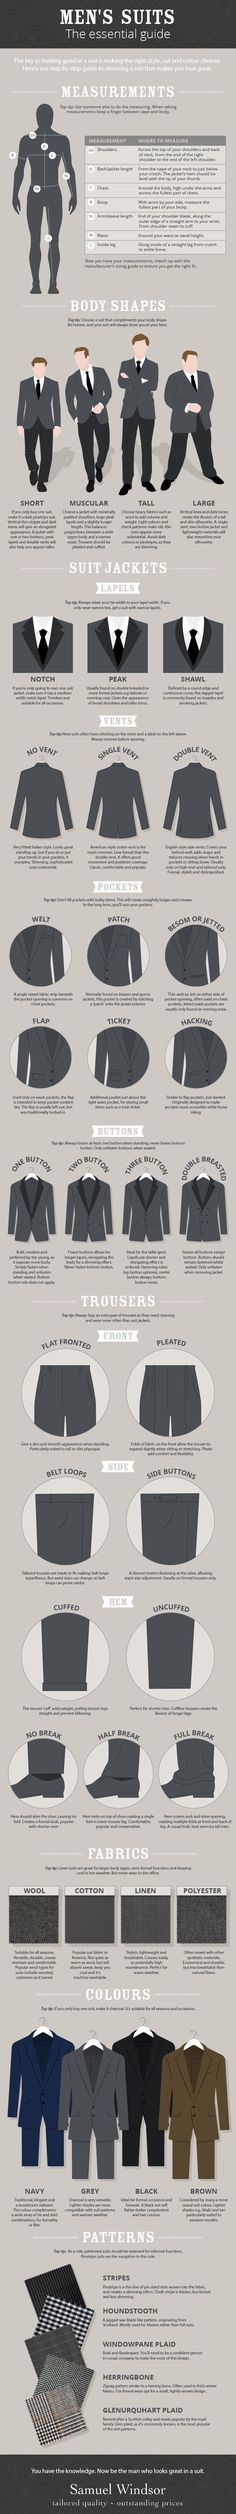 awesome Infographic: The Essential Guide To Men's Suits - DesignTAXI.com by http://www.danafashiontrends.us/big-men-fashion/infographic-the-essential-guide-to-mens-suits-designtaxi-com/